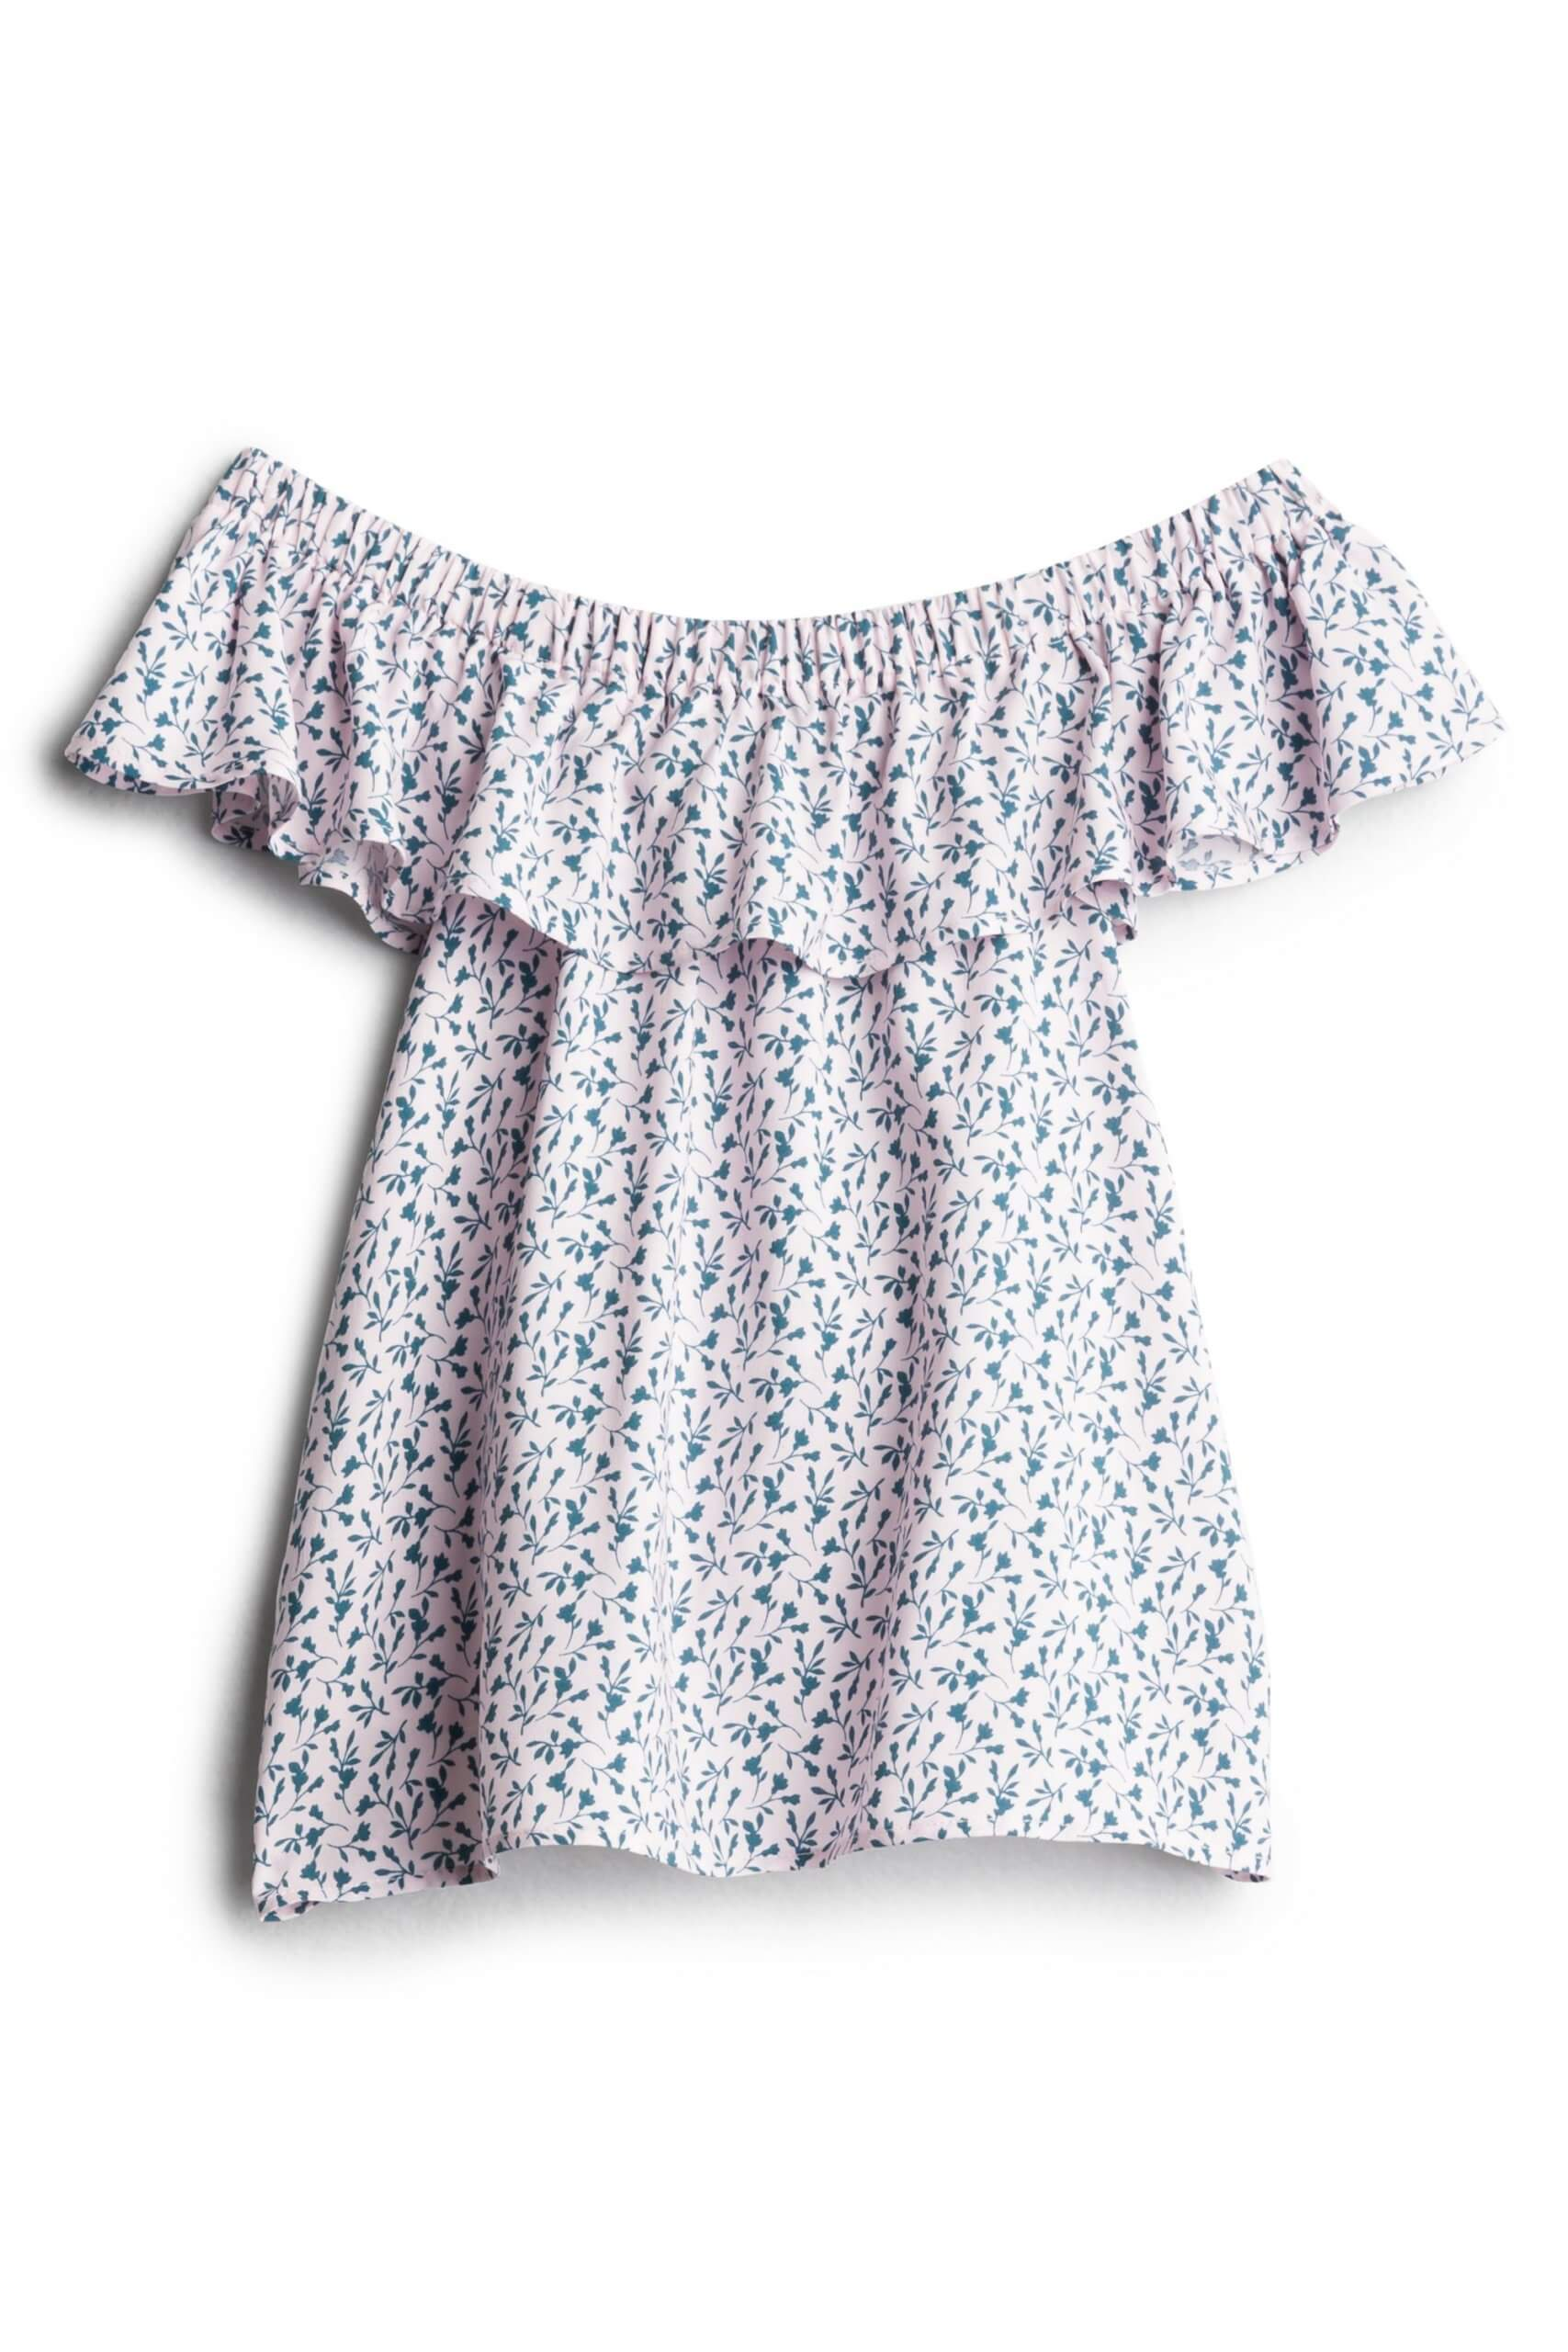 Stitch Fix Women's light pink off-the-shoulder ruffle top with blue florals.